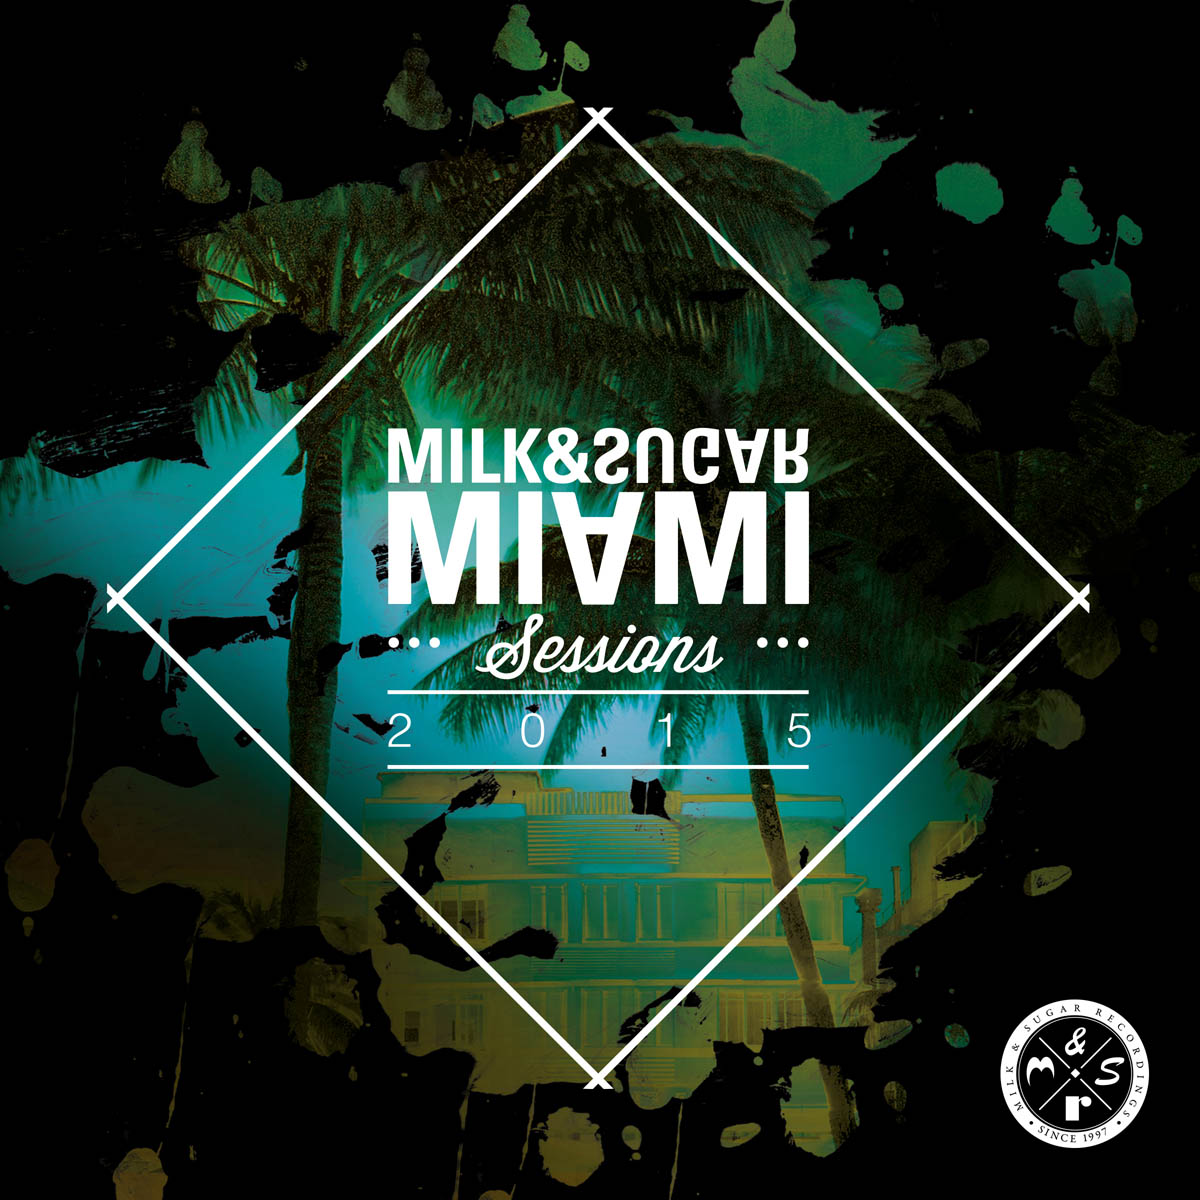 MIAMI SESSIONS 2015 Compiled and Mixed by Milk&Sugar